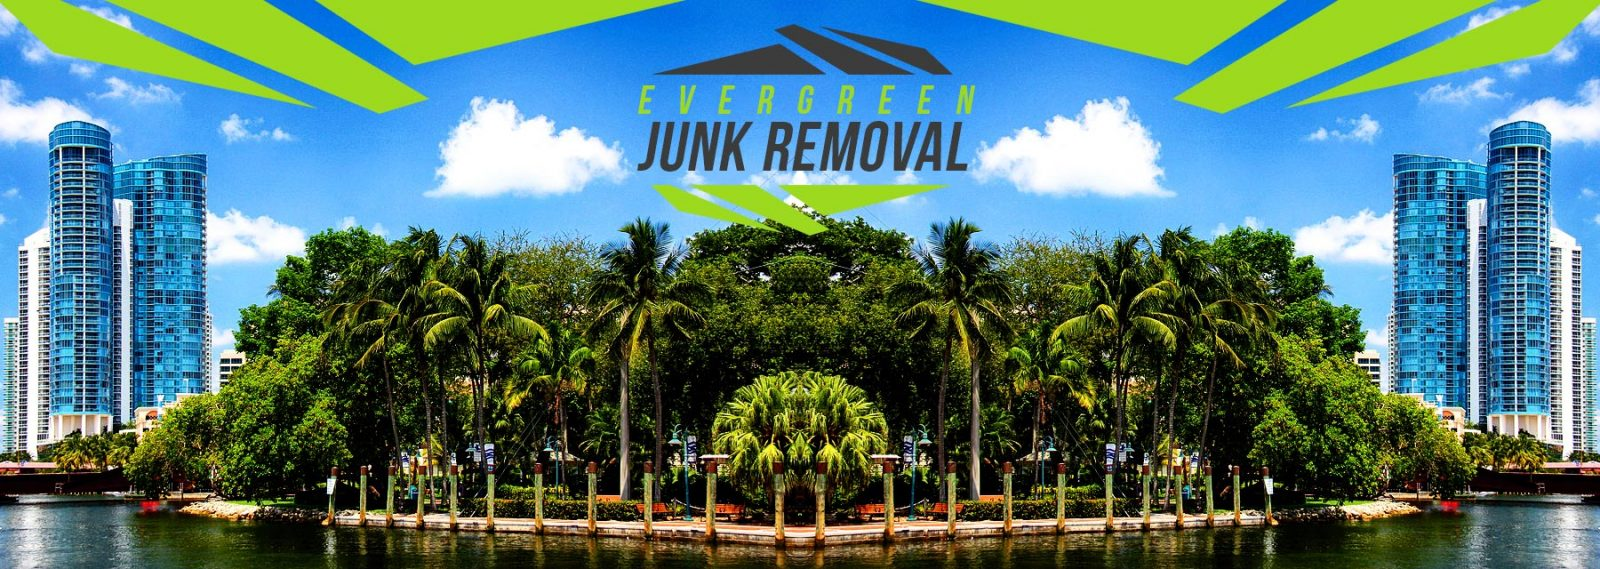 Deerfield Beach Hot Tub Removal Company